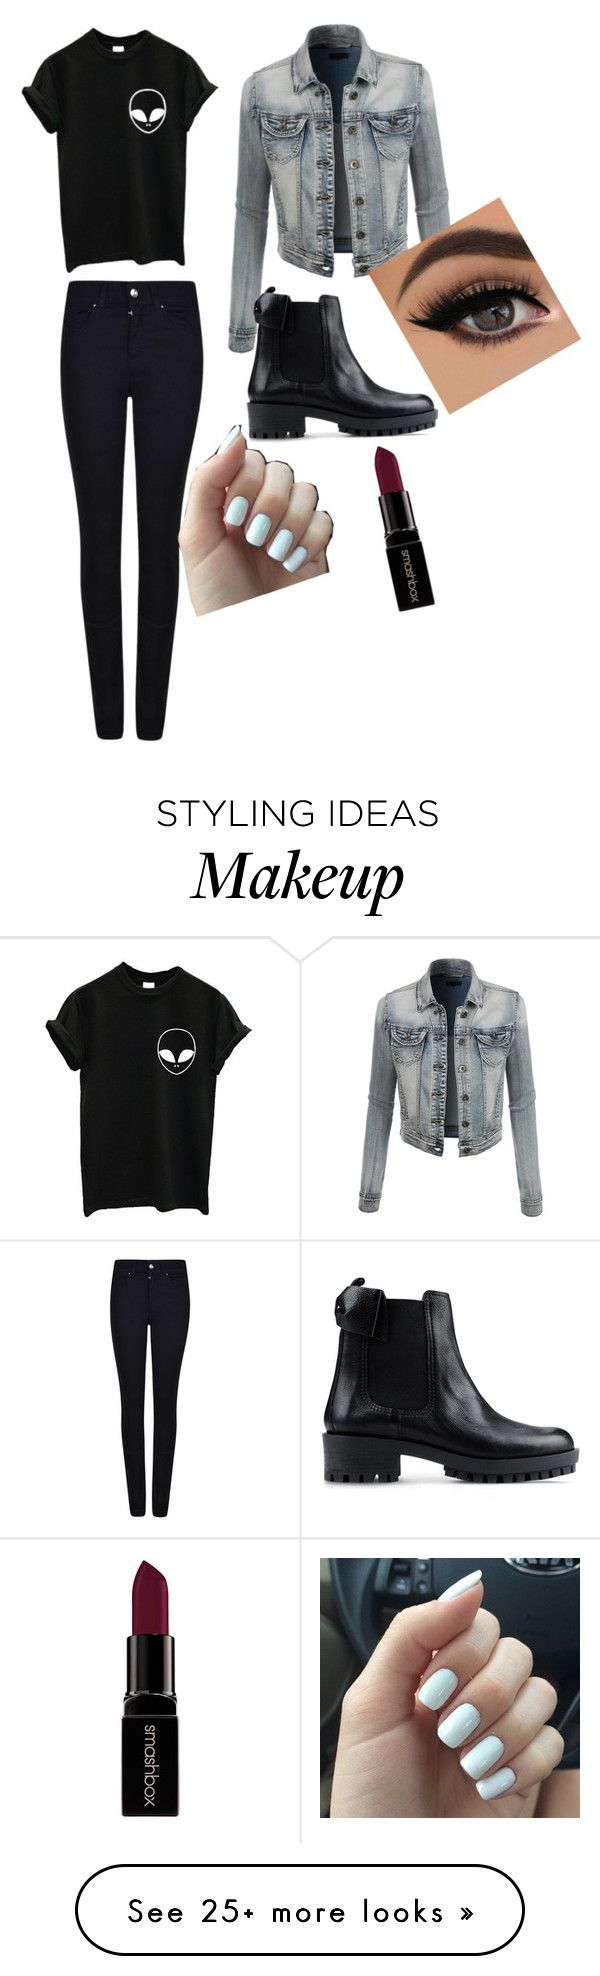 """""""Kenzie's emo af"""" by giannajsmith on Polyvore featuring LE3NO, Giorgio Armani, RED Valentino, Smashbox, women's clothing, women's fashion, women, female, woman and misses"""